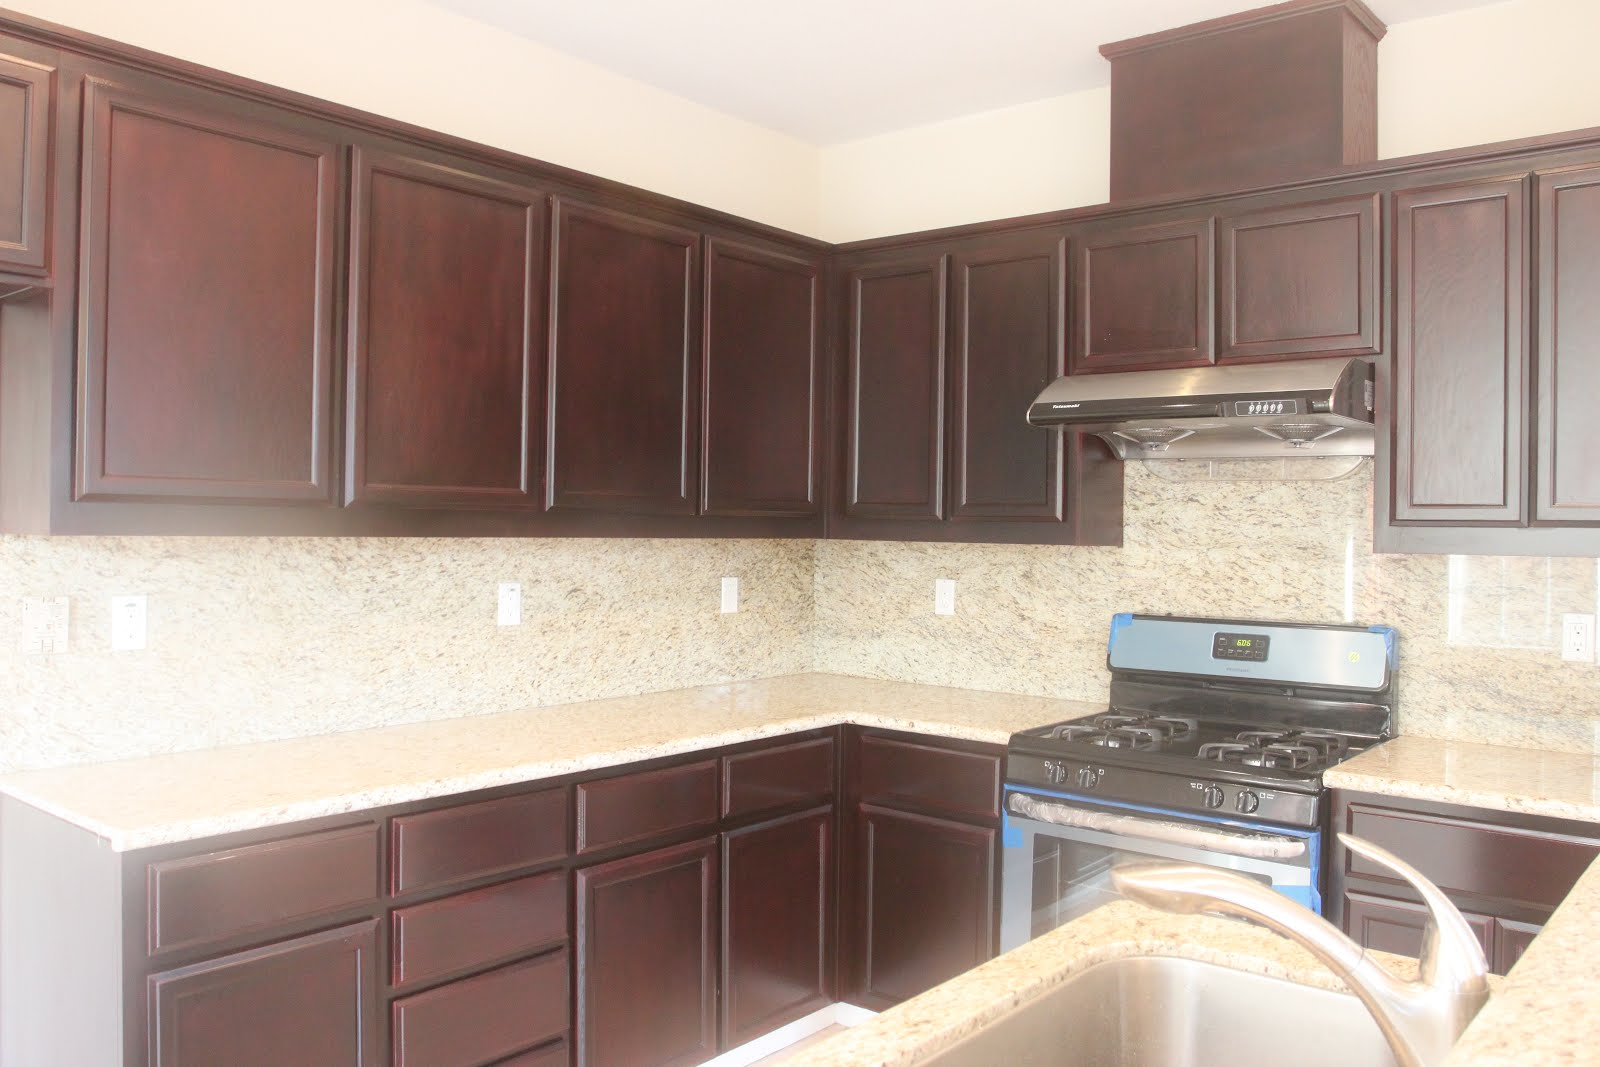 Hong Bo Hardware Supply Refinish Kitchen Oak Cabinets And